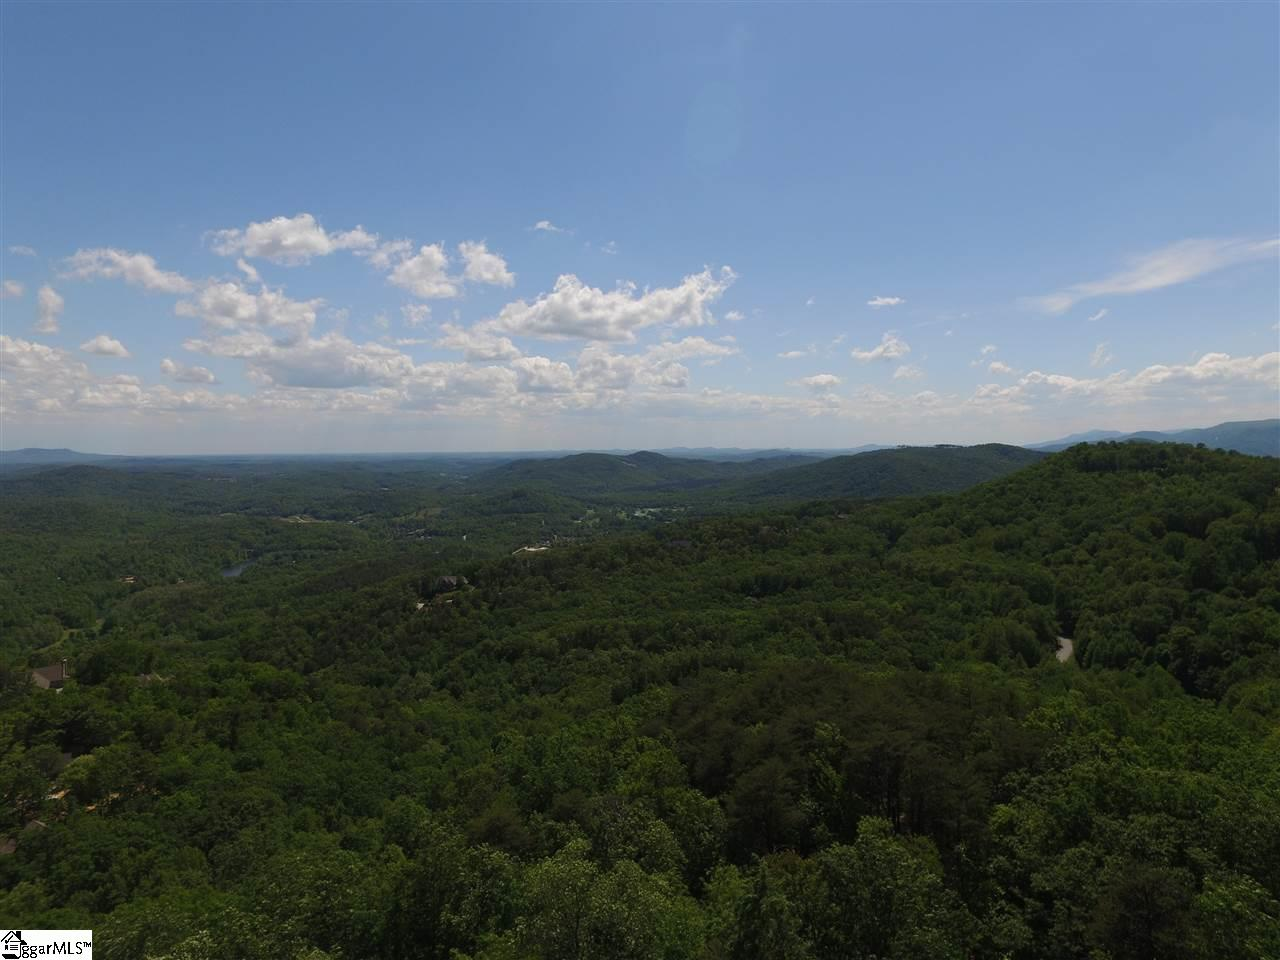 Experience 180 degree breathtaking mountain views from this privately located homesite on over 6 acres of land! Views include Table Rock, Cliffs Valley Golf Course and Clubhouse in the distance. Level build site with walk out basement best suited for site. There is a free flowing creek on the property. A Cliffs Club membership is available to purchase with the real estate giving you access to all 7 of The Cliffs Clubs.